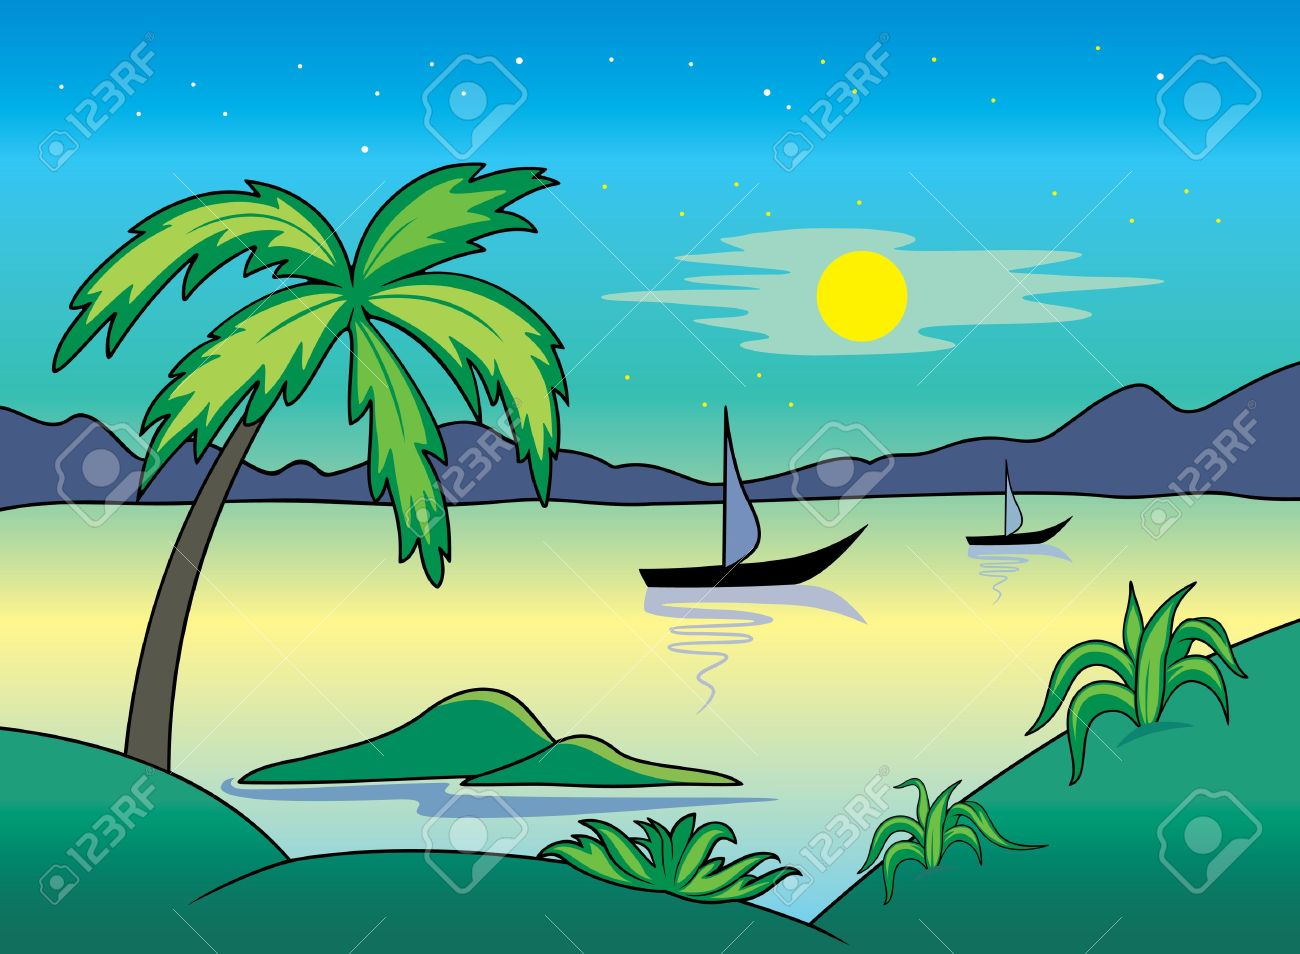 Landscapes clipart - Clipground